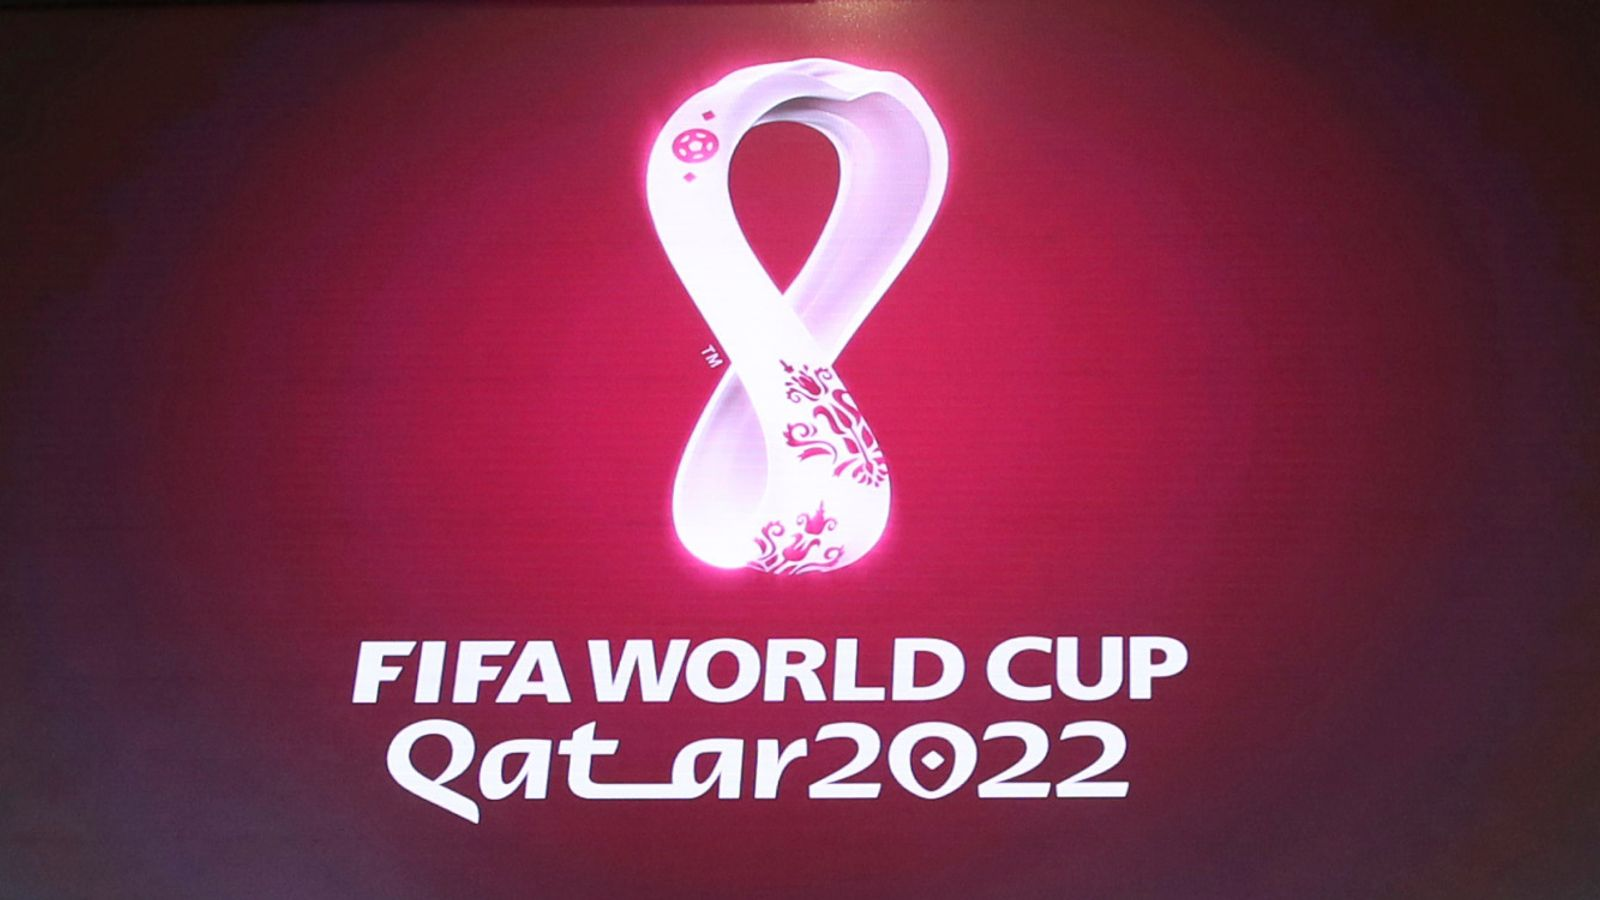 World Cup 2022: Qatar says only fans vaccinated against Covid-19 will be allowed attend matches